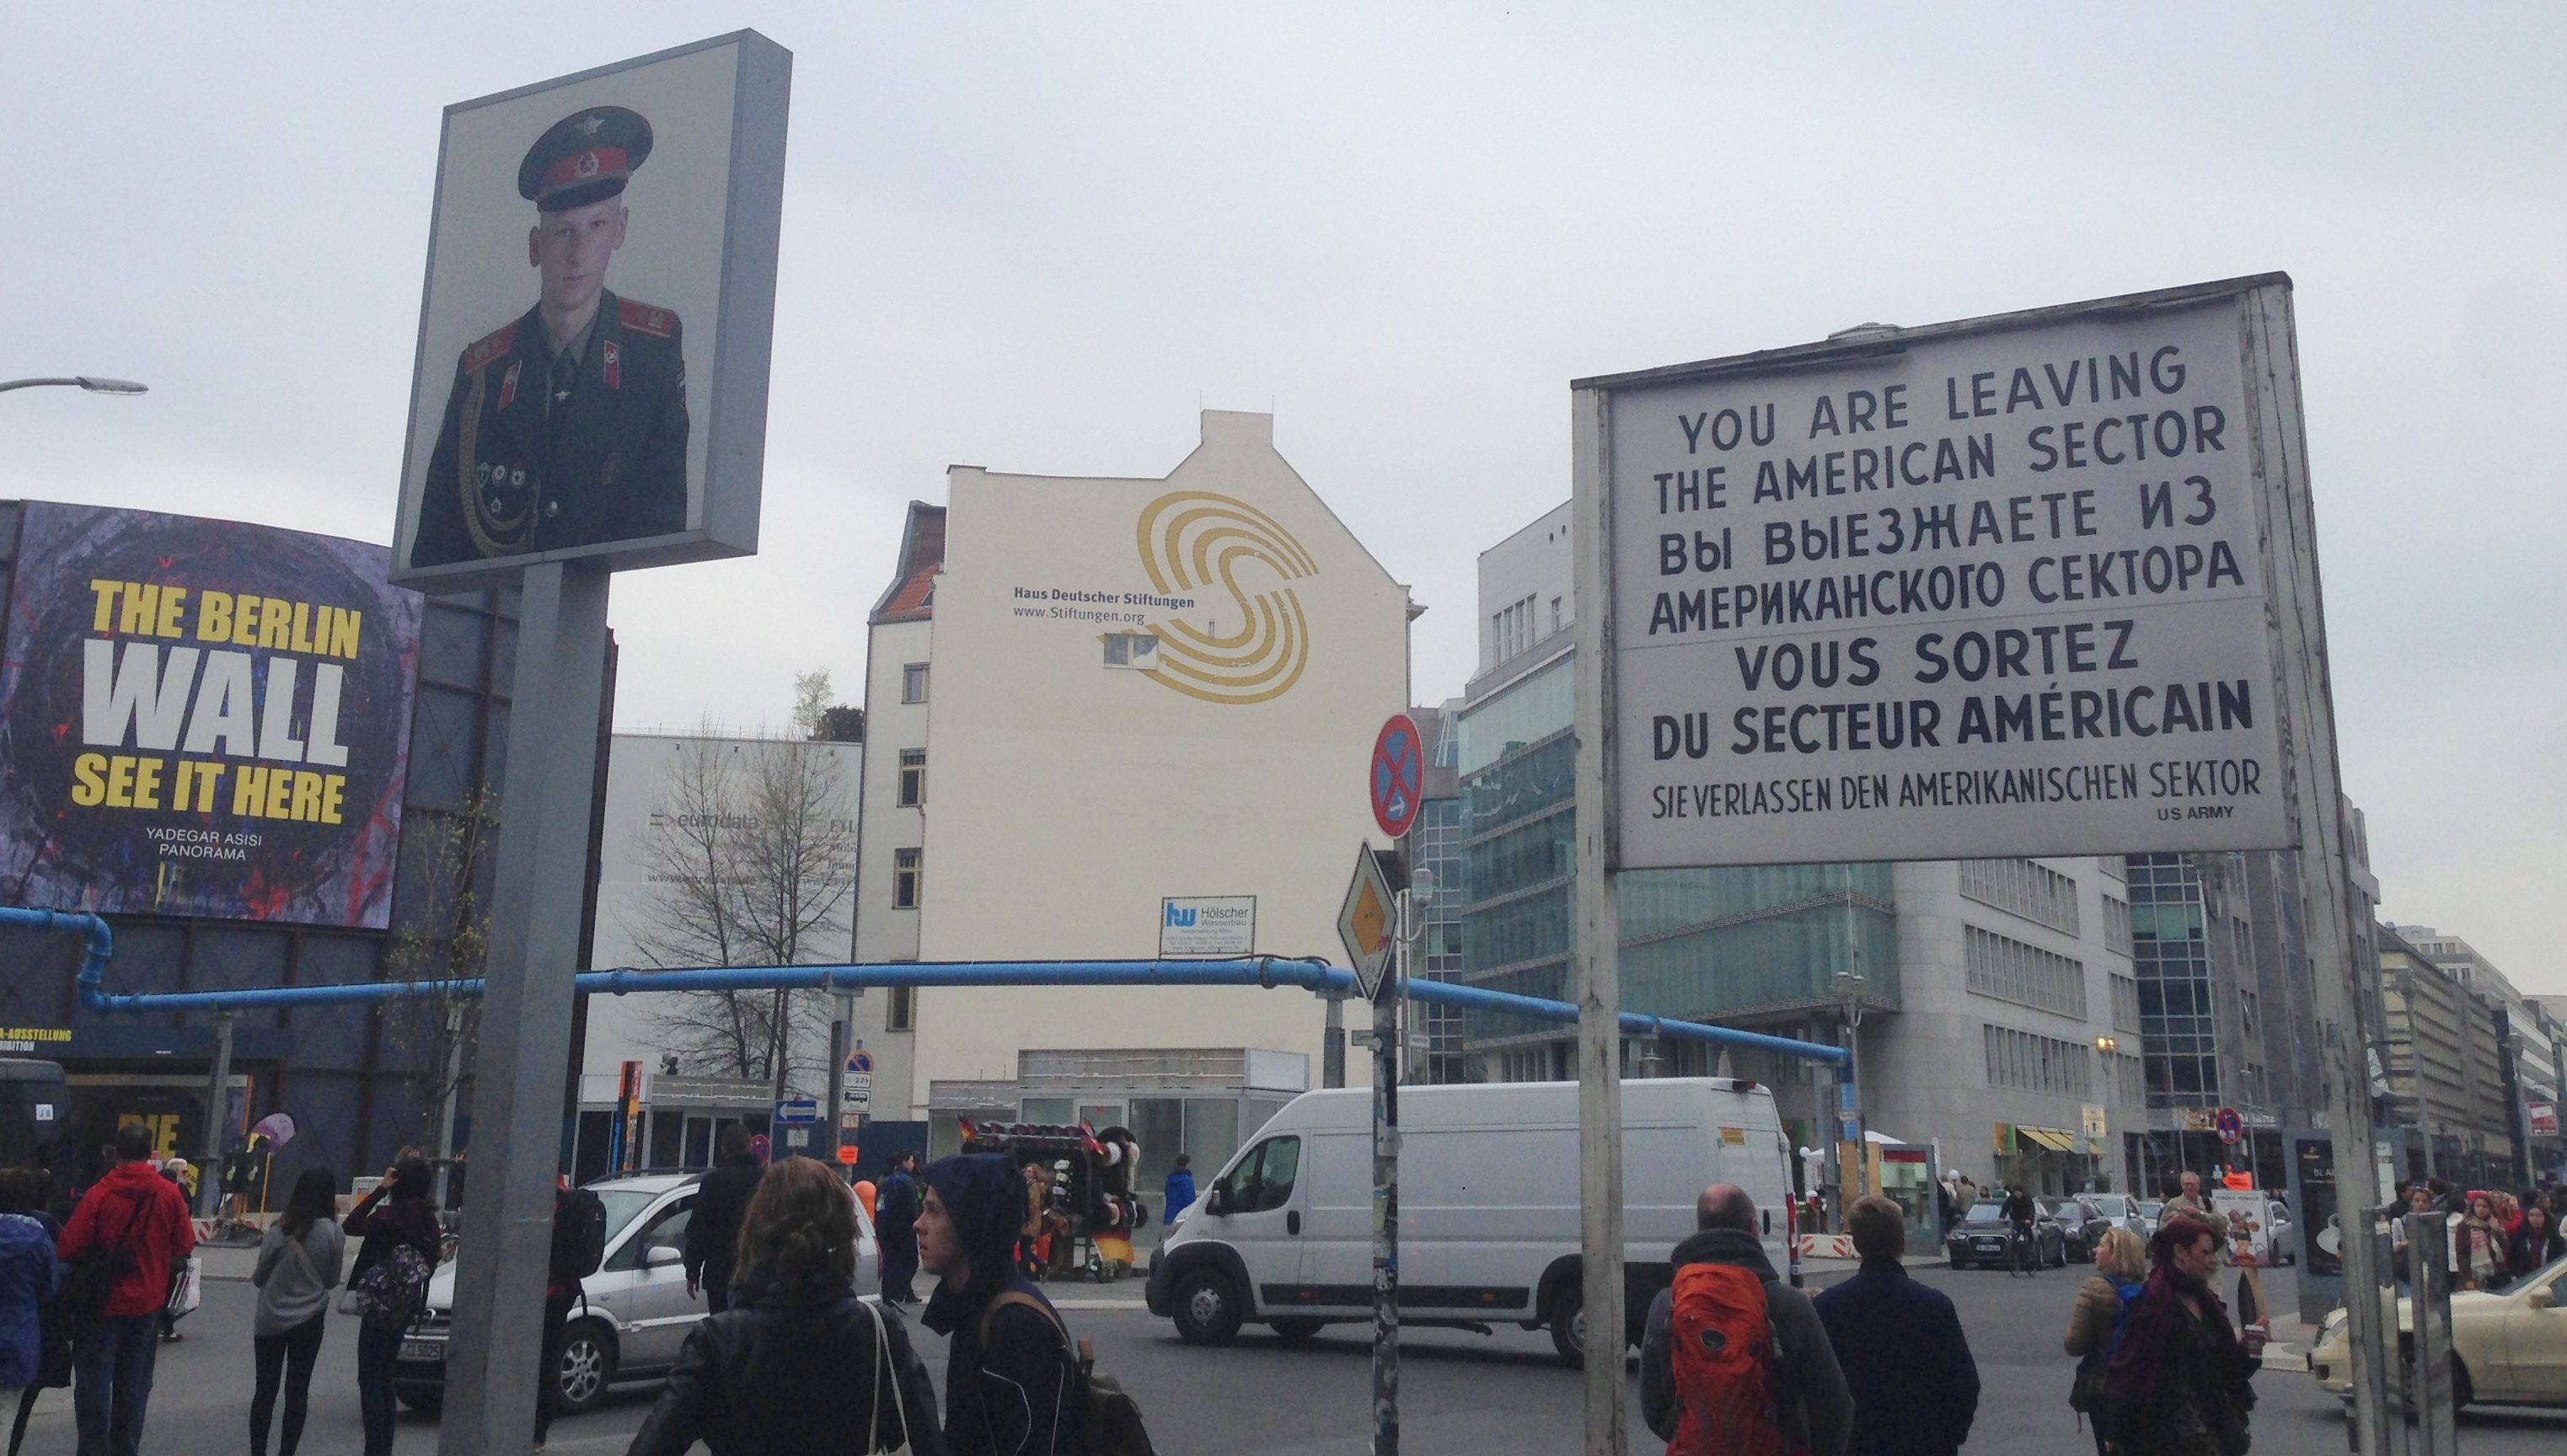 There's almost nothing original left at Checkpoint Charlie, but it is ...